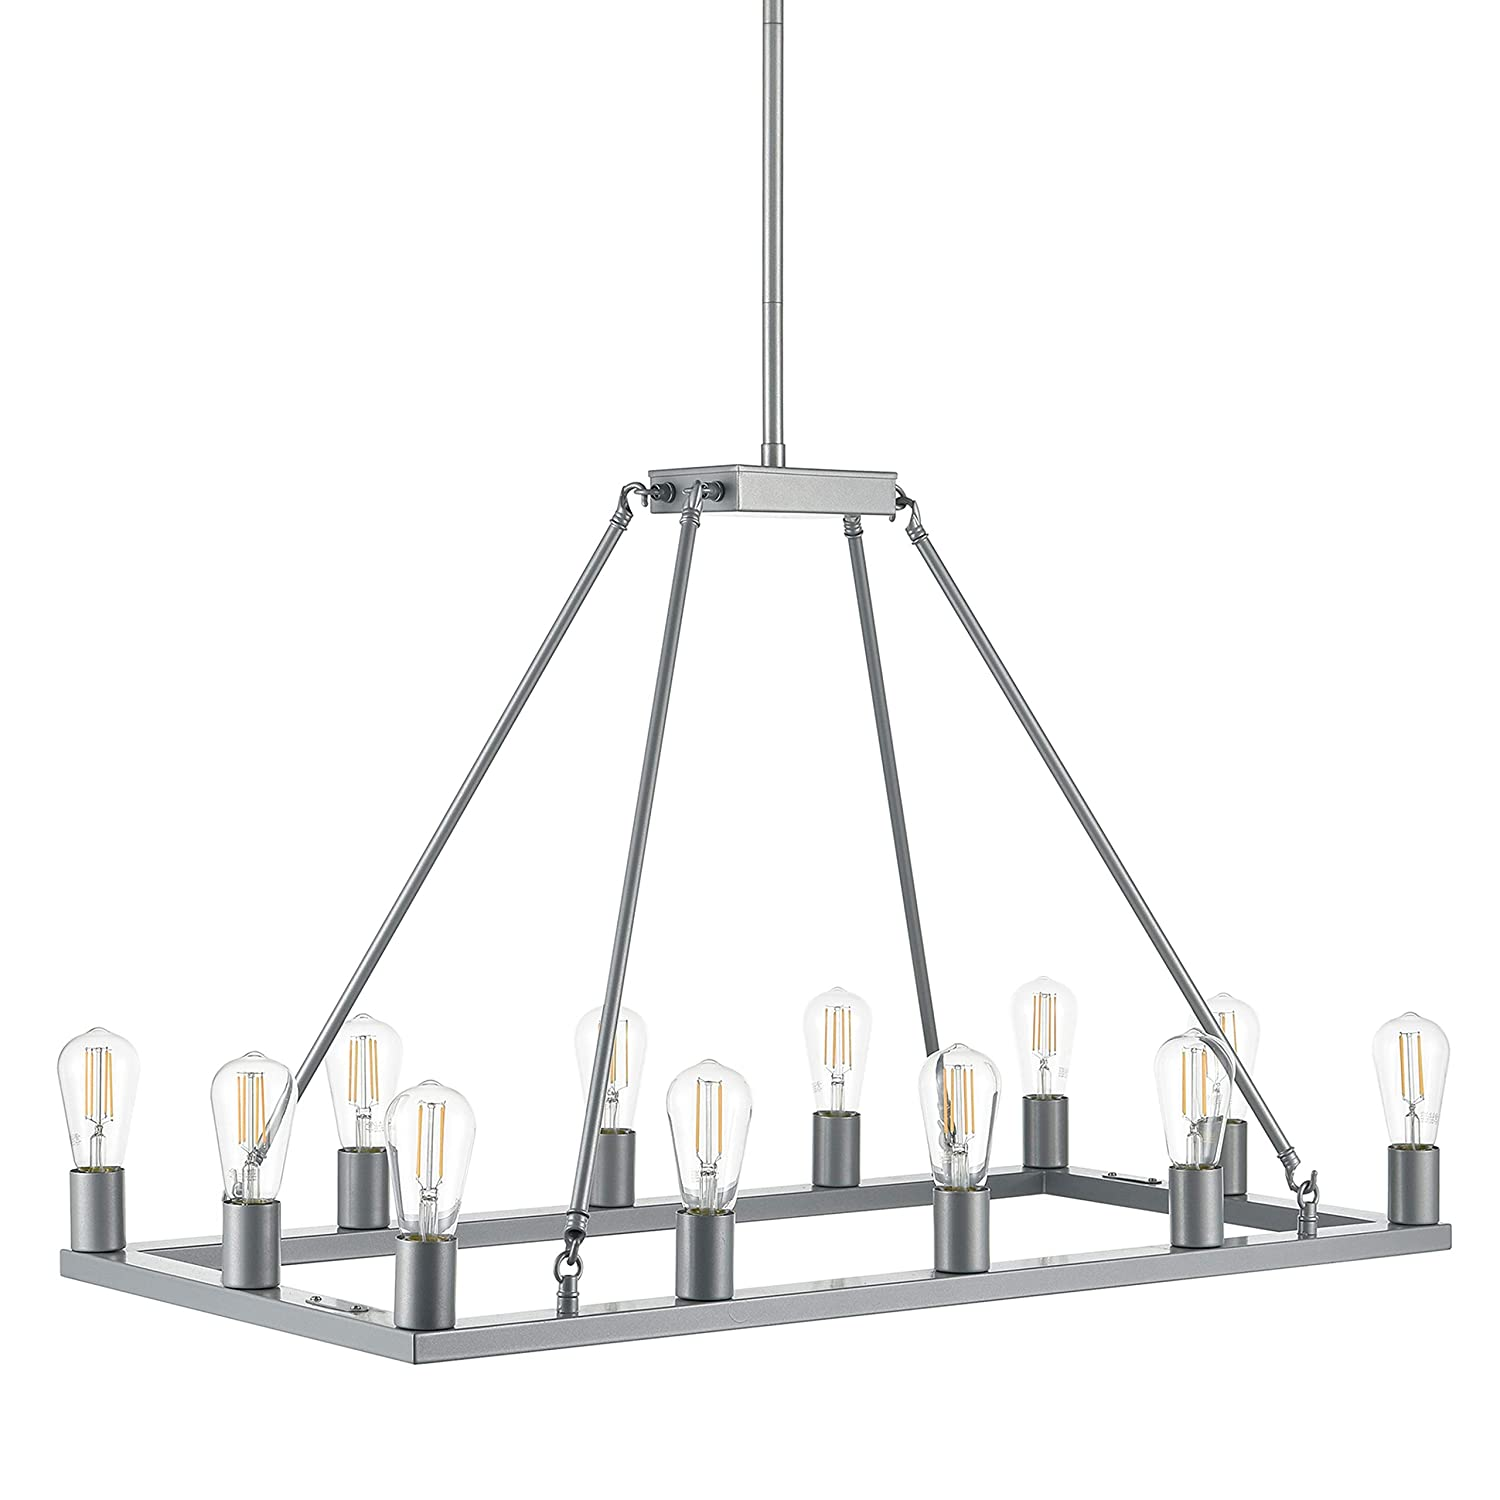 Sonoro Large Rectangular 12 Light Dining Room Industrial Chandelier | Silver Kitchen Island Light Fixtures with LED Bulbs LL-CH5-1836-1SIL